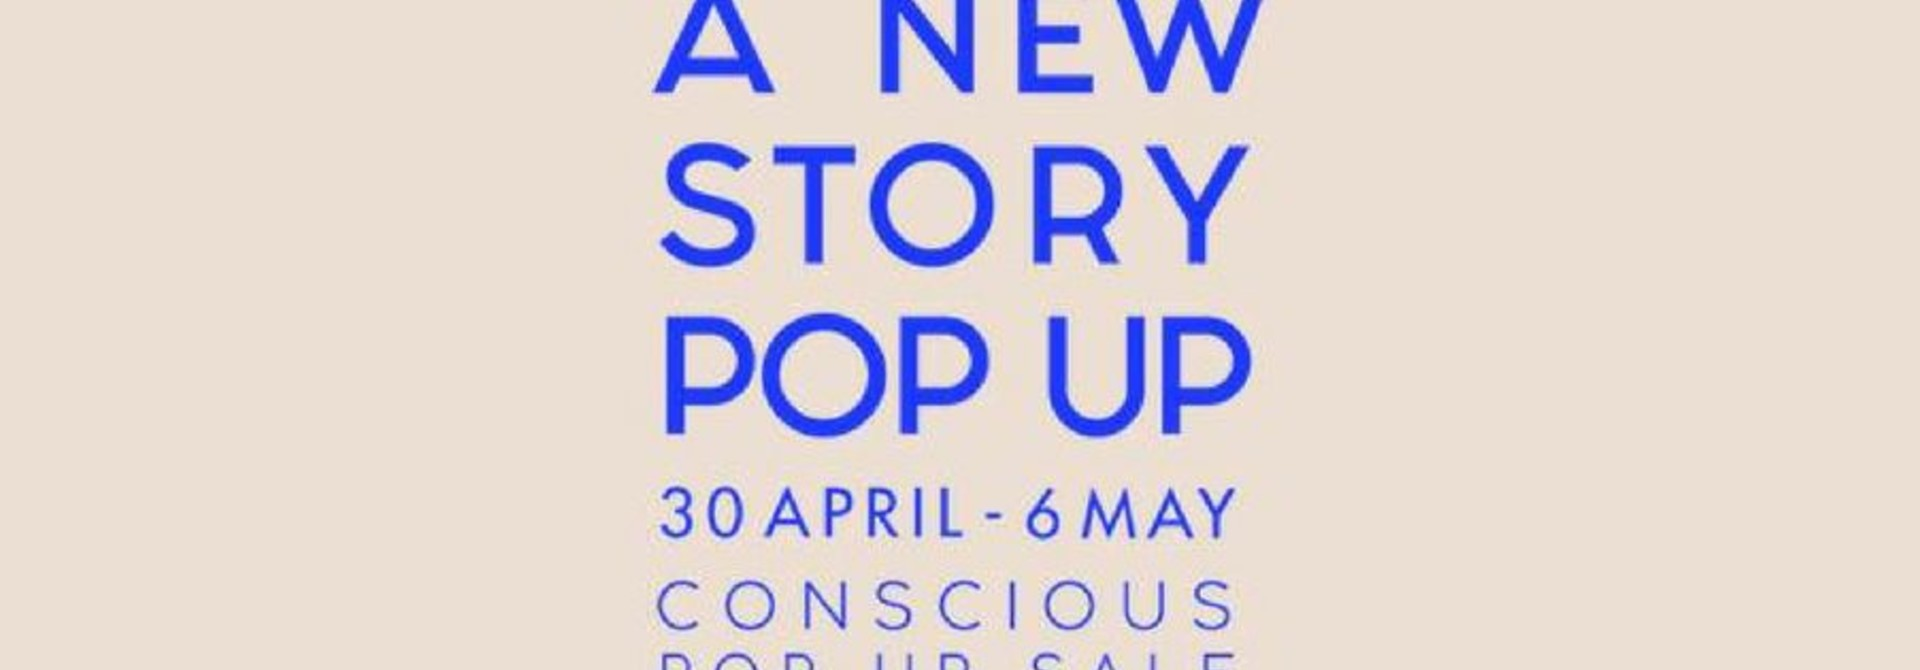 Take it slow en de New Story Pop-Up in Amsterdam